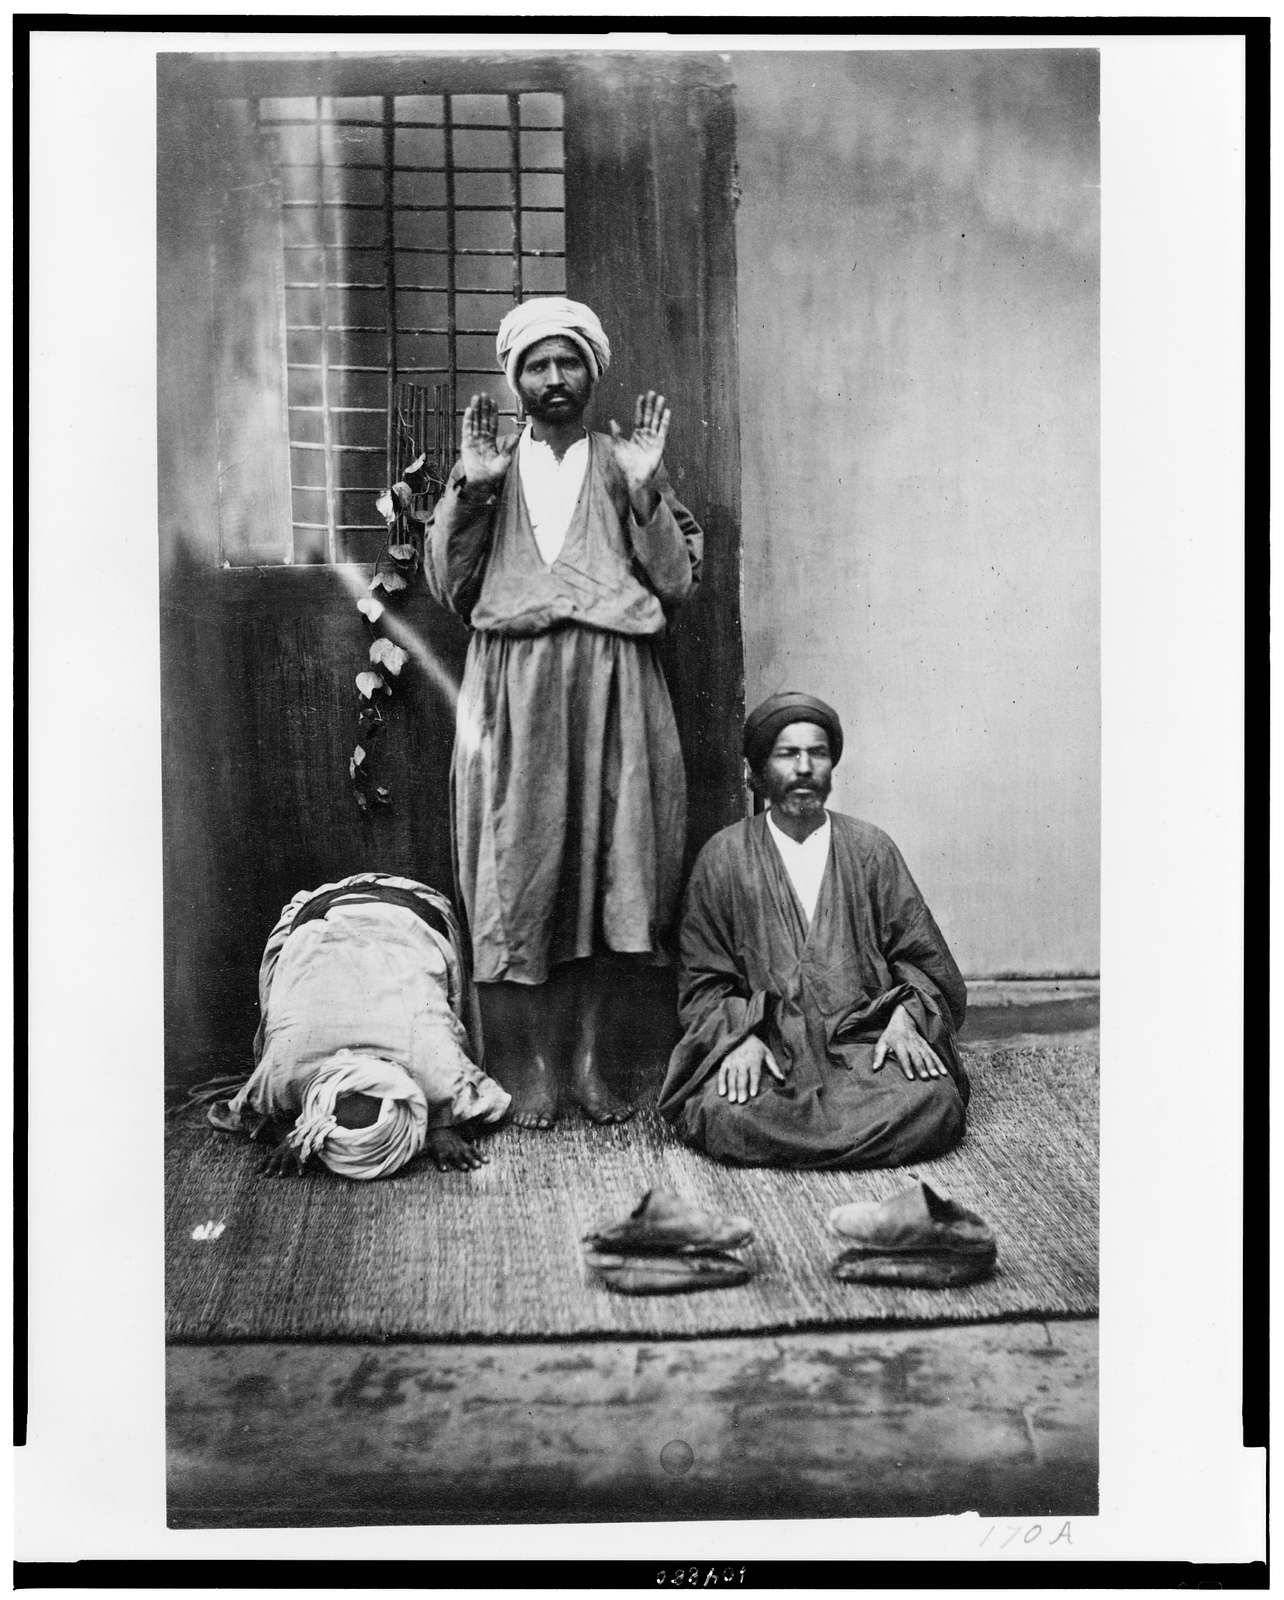 [Cairo(?). Three indigenous people in prayer]